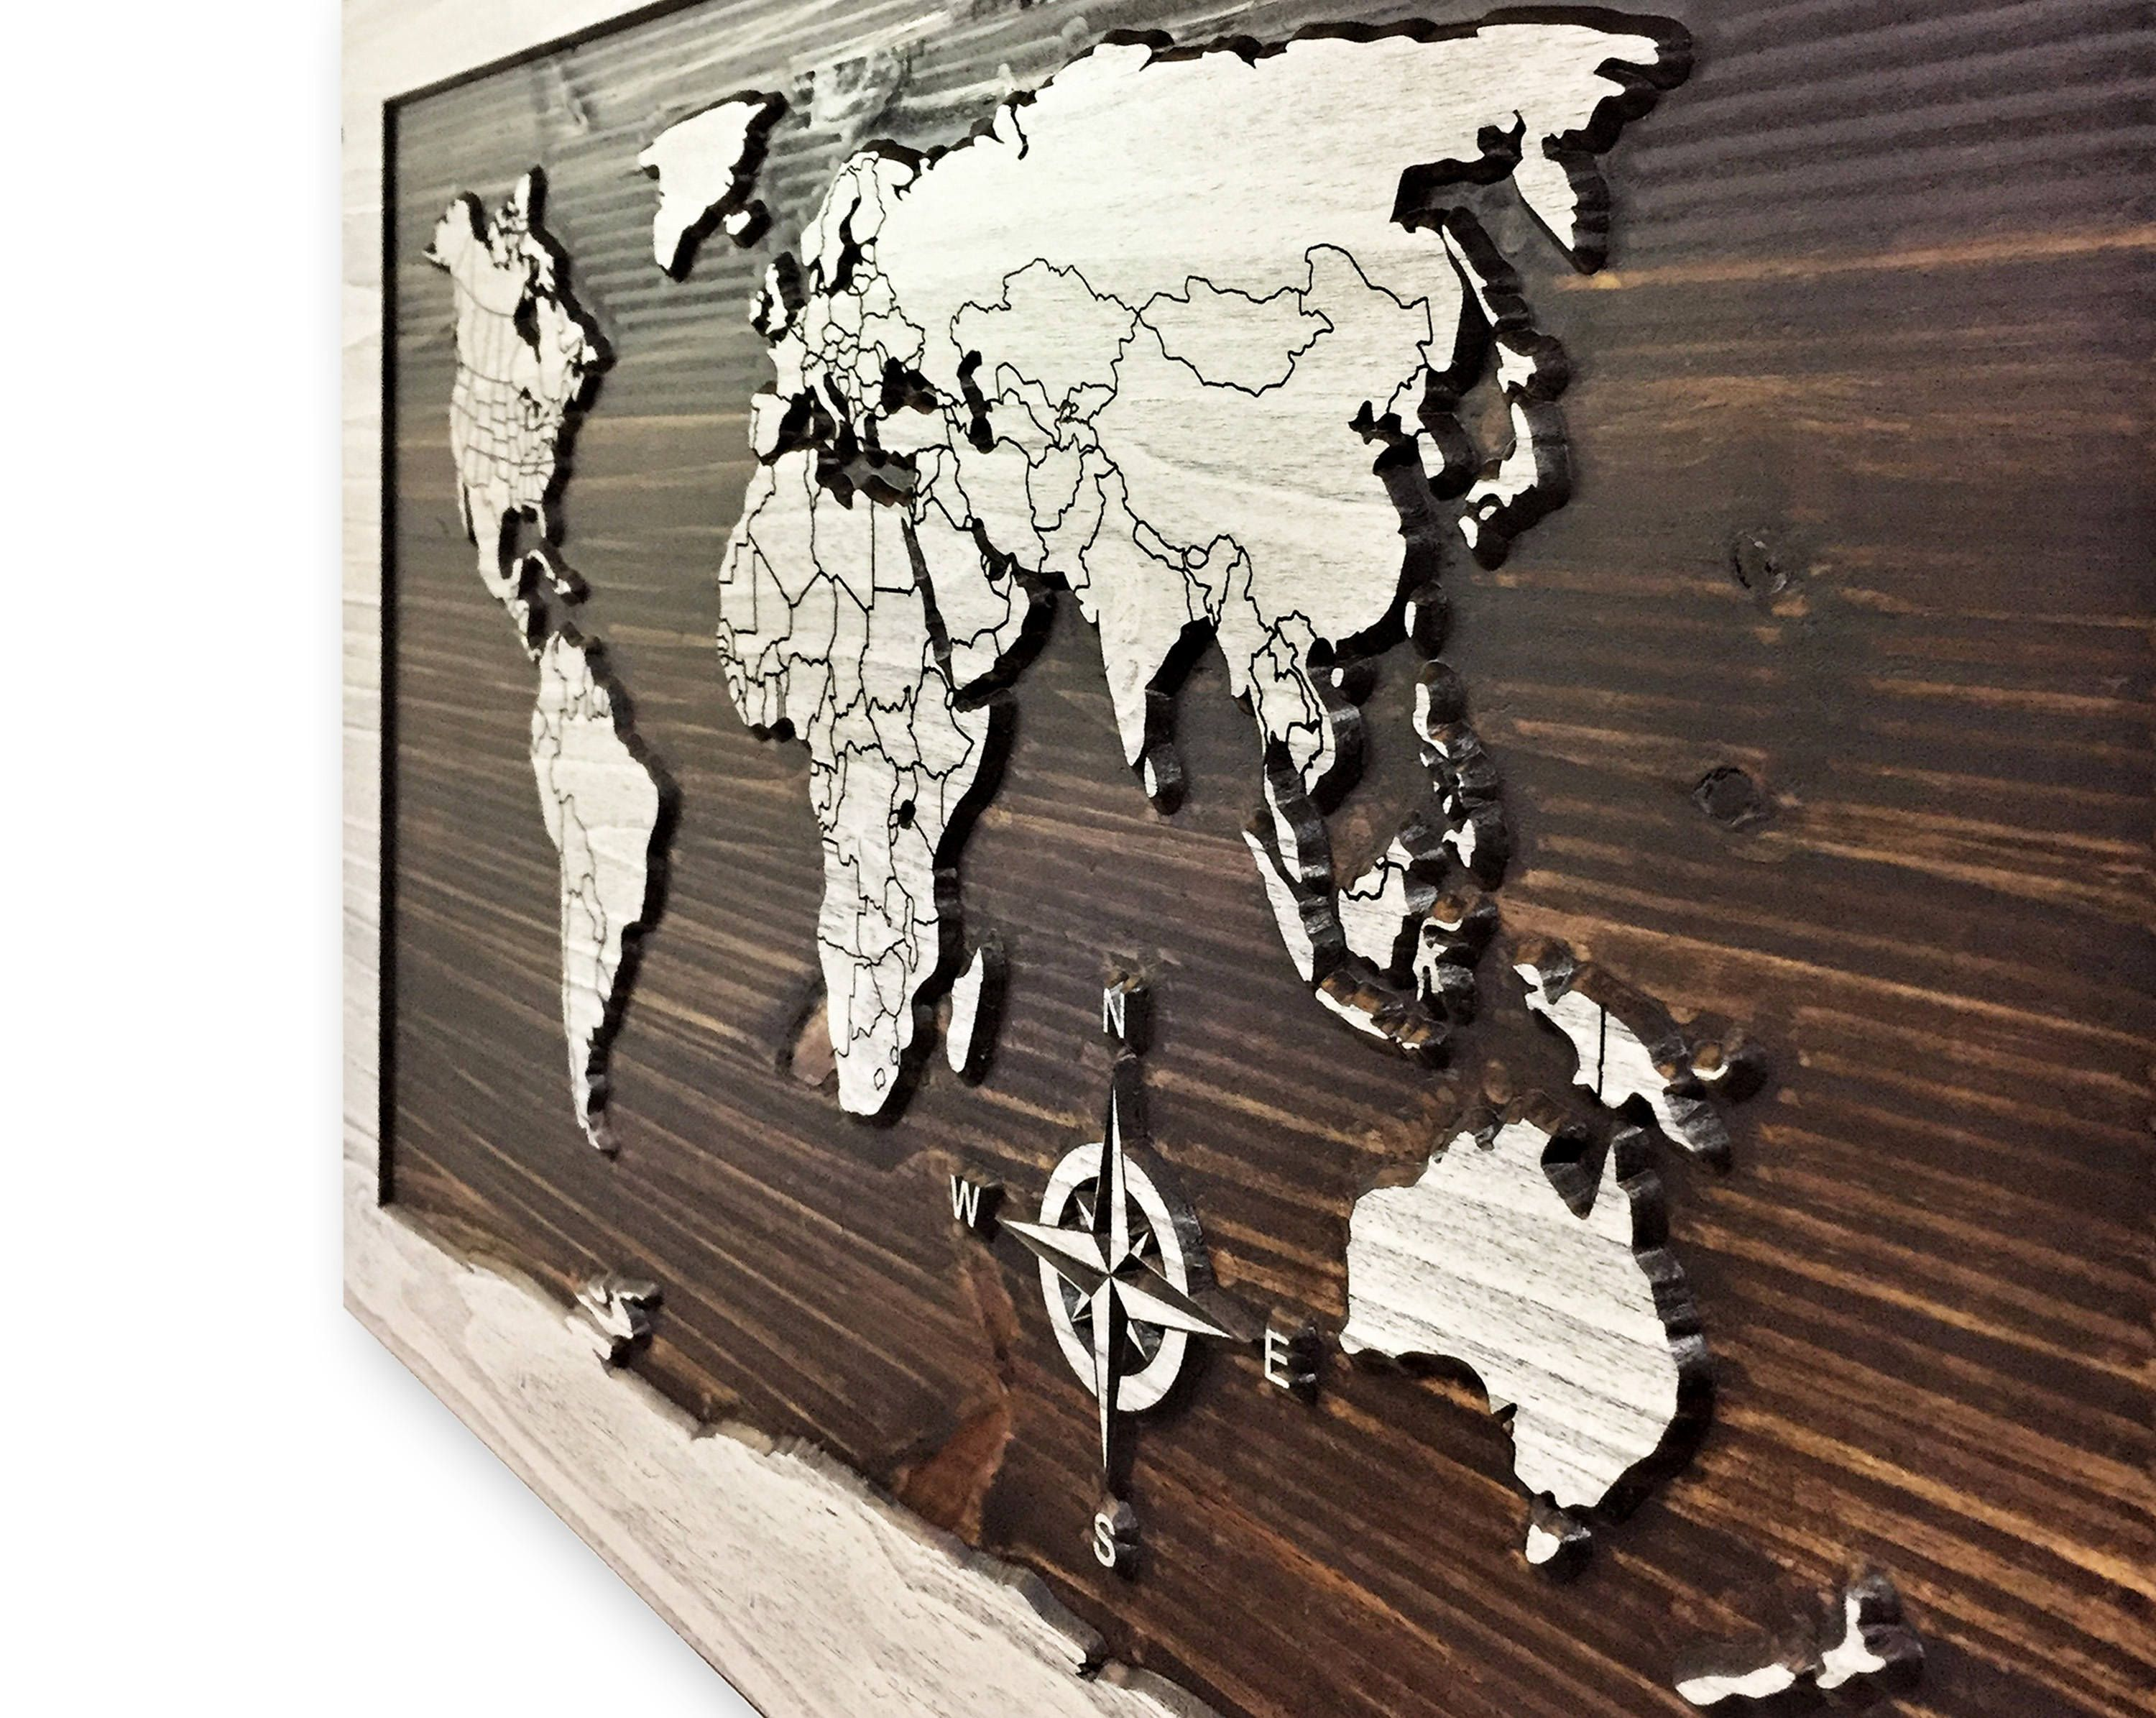 Wood wall art world map decor wooden map map art map of world wood wall art world map decor wooden map map art map of gumiabroncs Choice Image